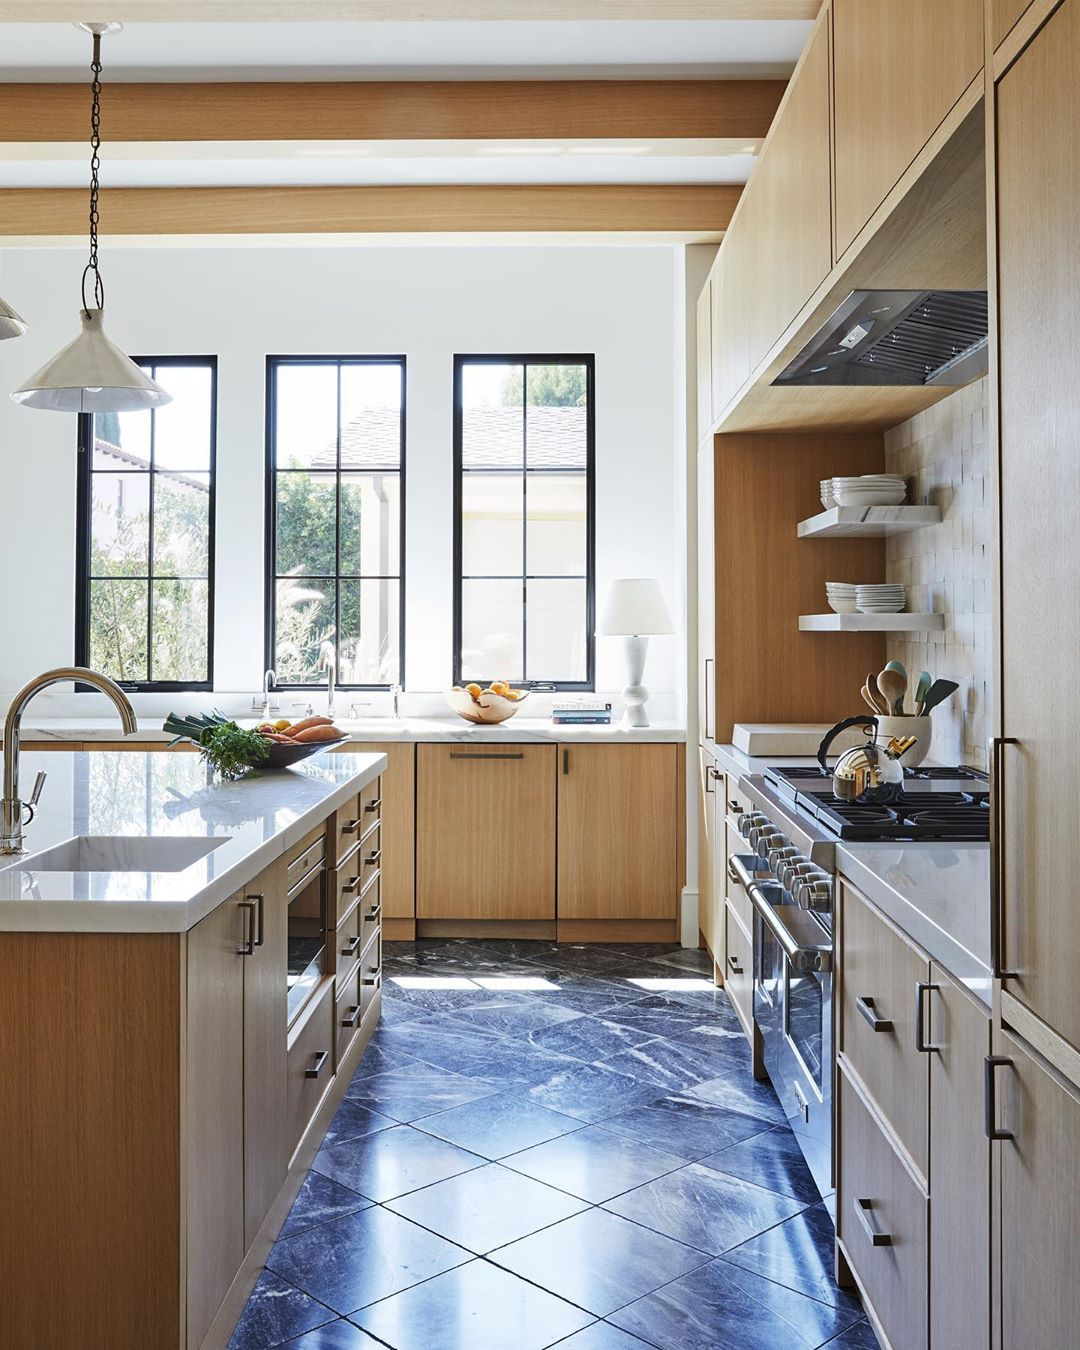 We Ve Rounded Up 17 Kitchen Tile Floor Ideas So Swoon Worthy We Re Willing To Bet They Will Make Y In 2020 Disc Interiors Blue Kitchen Designs White Tile Kitchen Floor